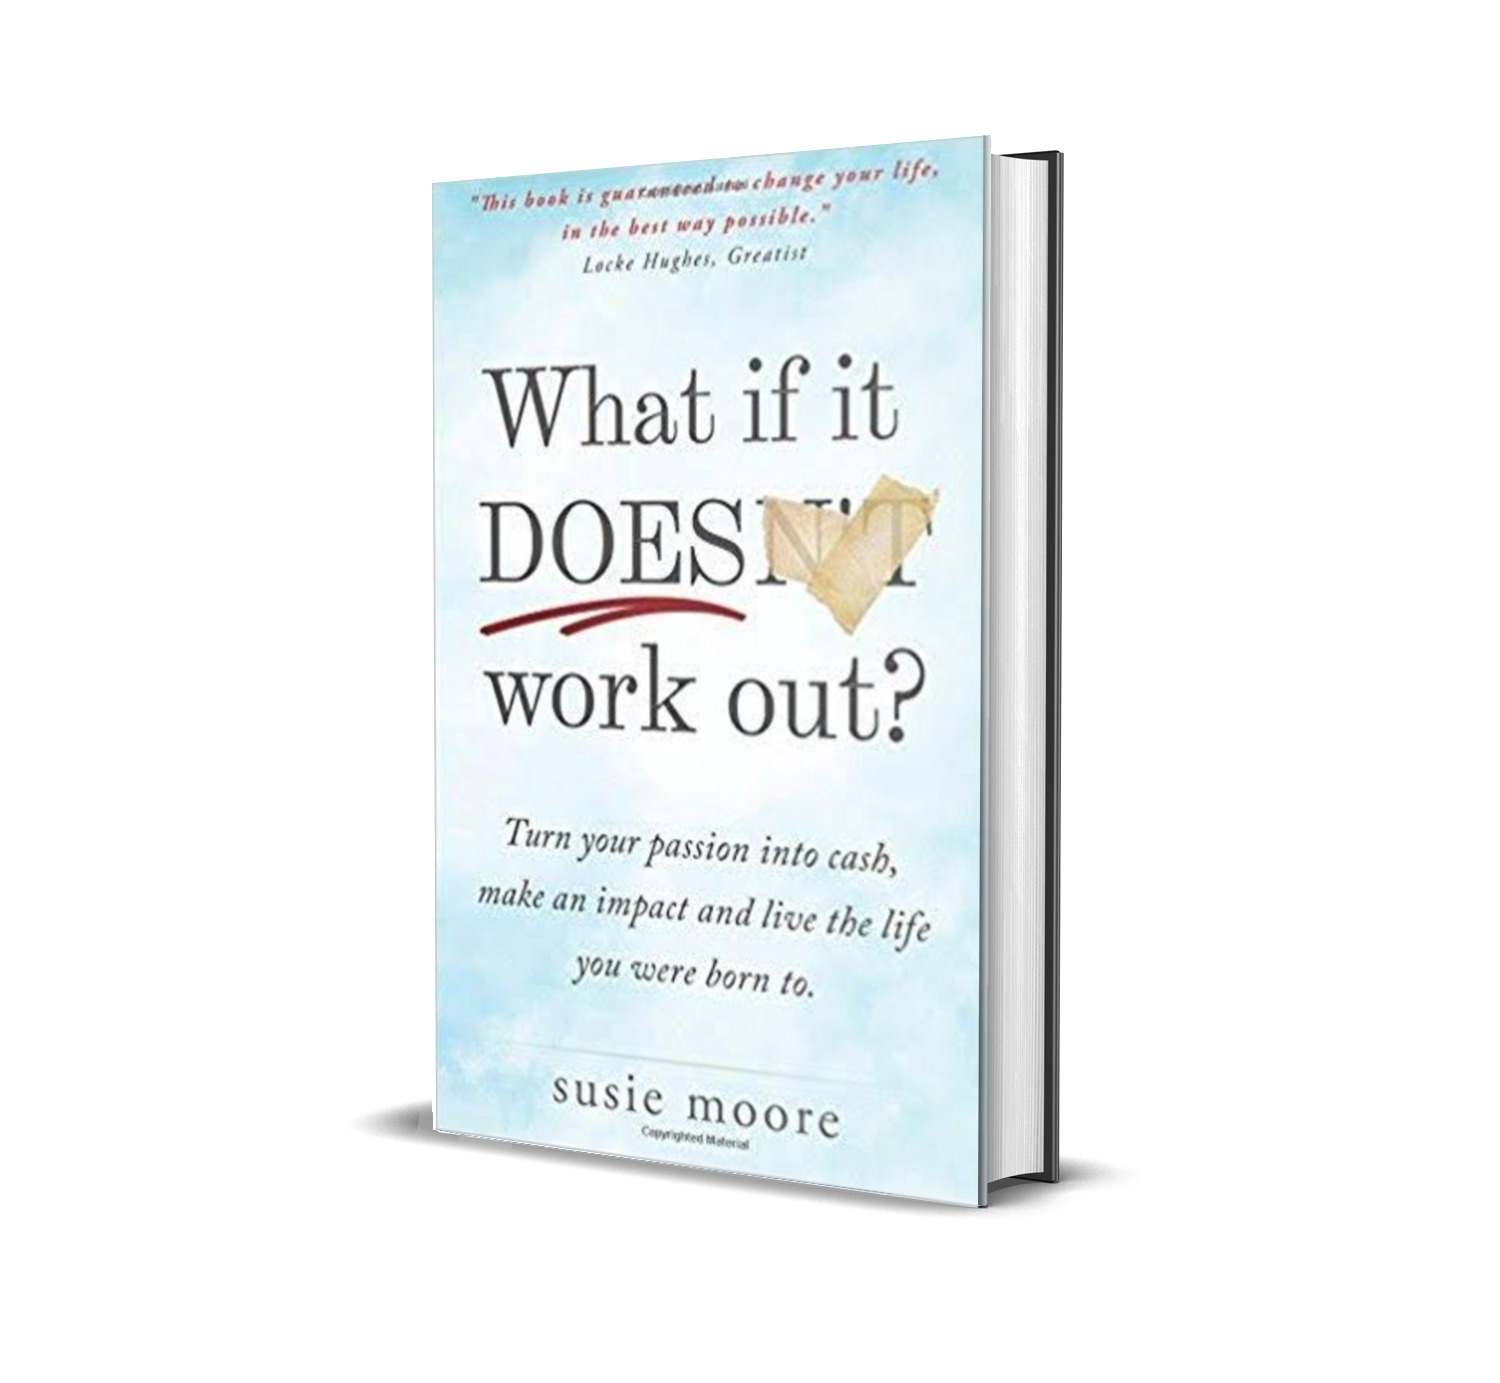 What if it does work out:turn your passion cash, make an impact and live a life you were born to- Susan Moore